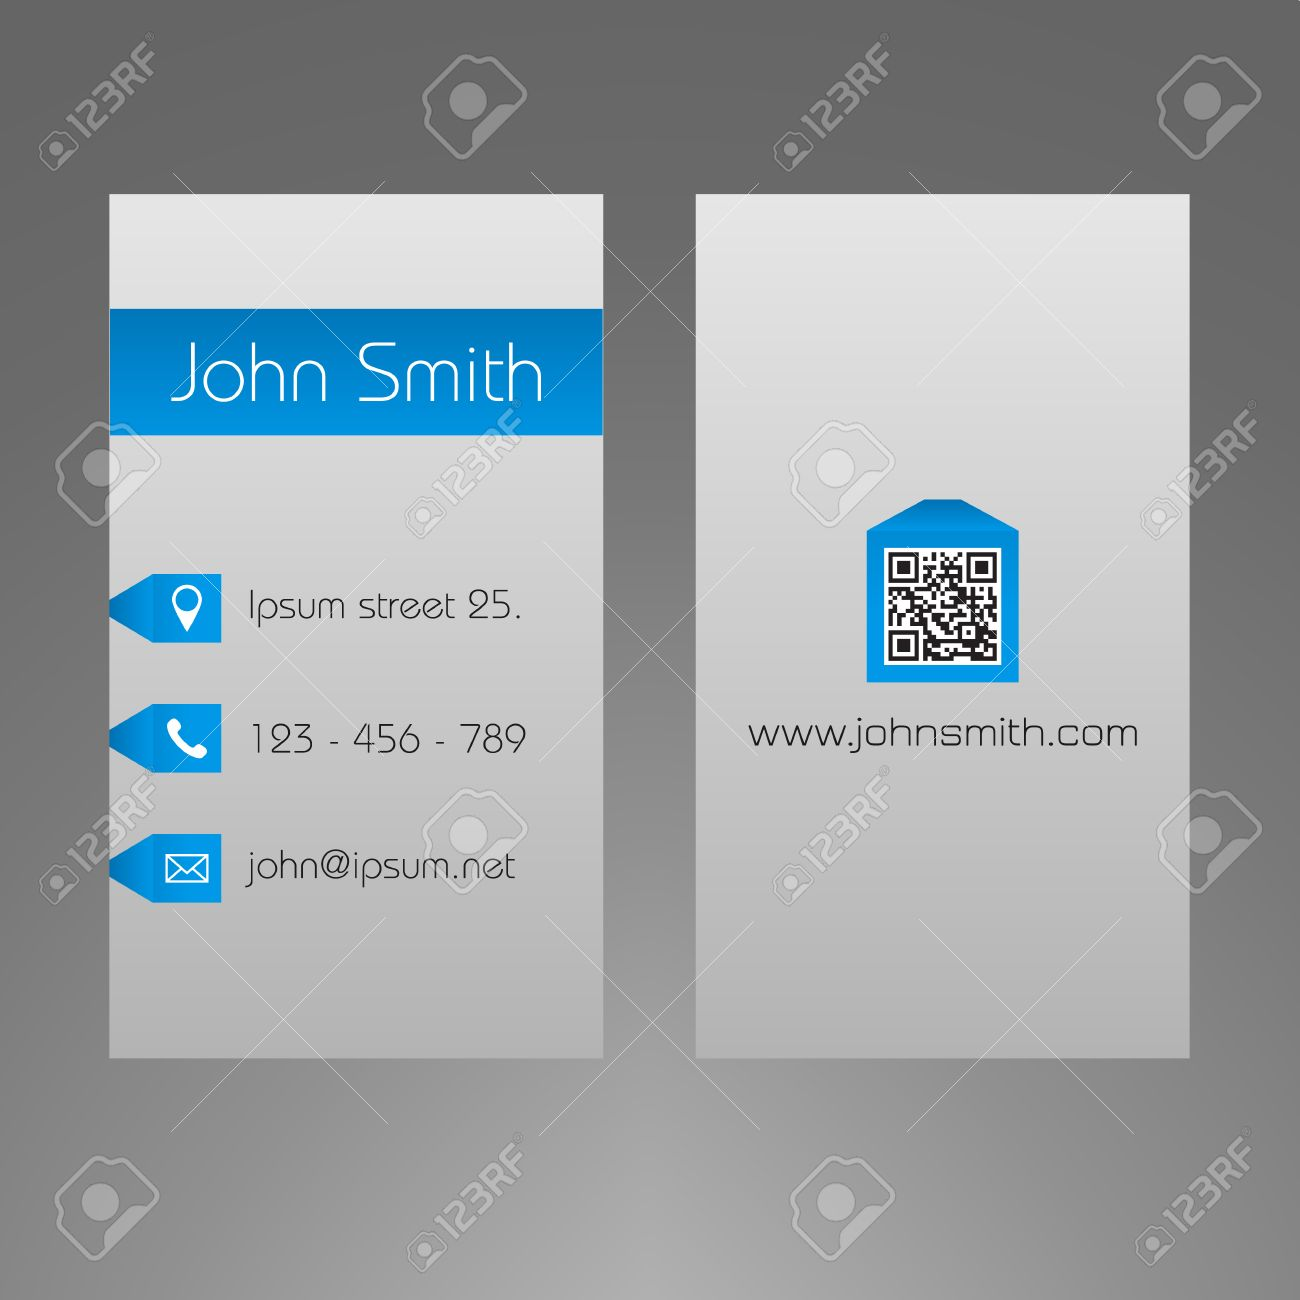 Business Card Template - Light Grey And Blue Design - Minimalistic ...